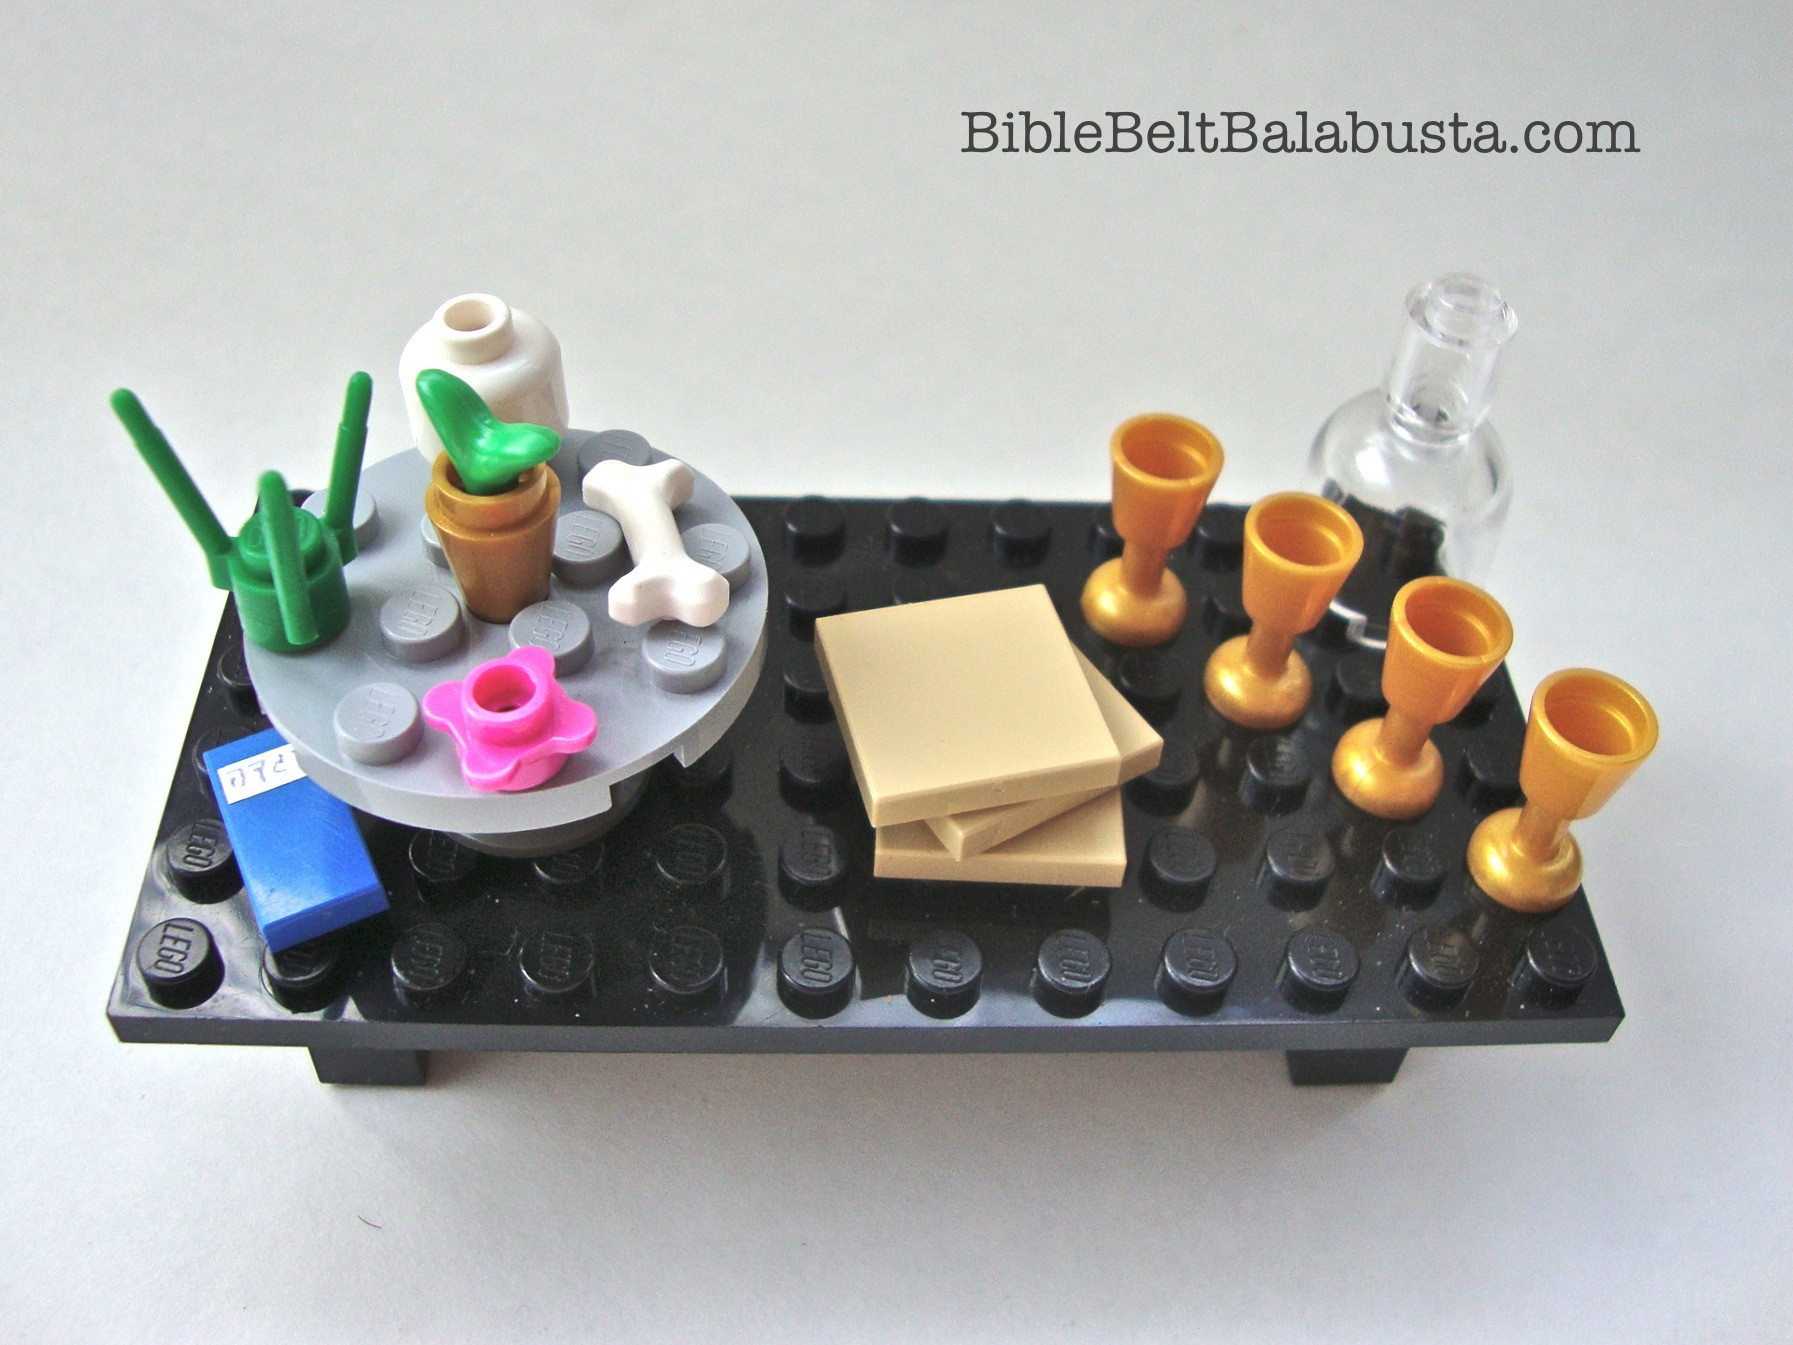 Lego Seder Table Minifig Passover Bible Belt Balabusta